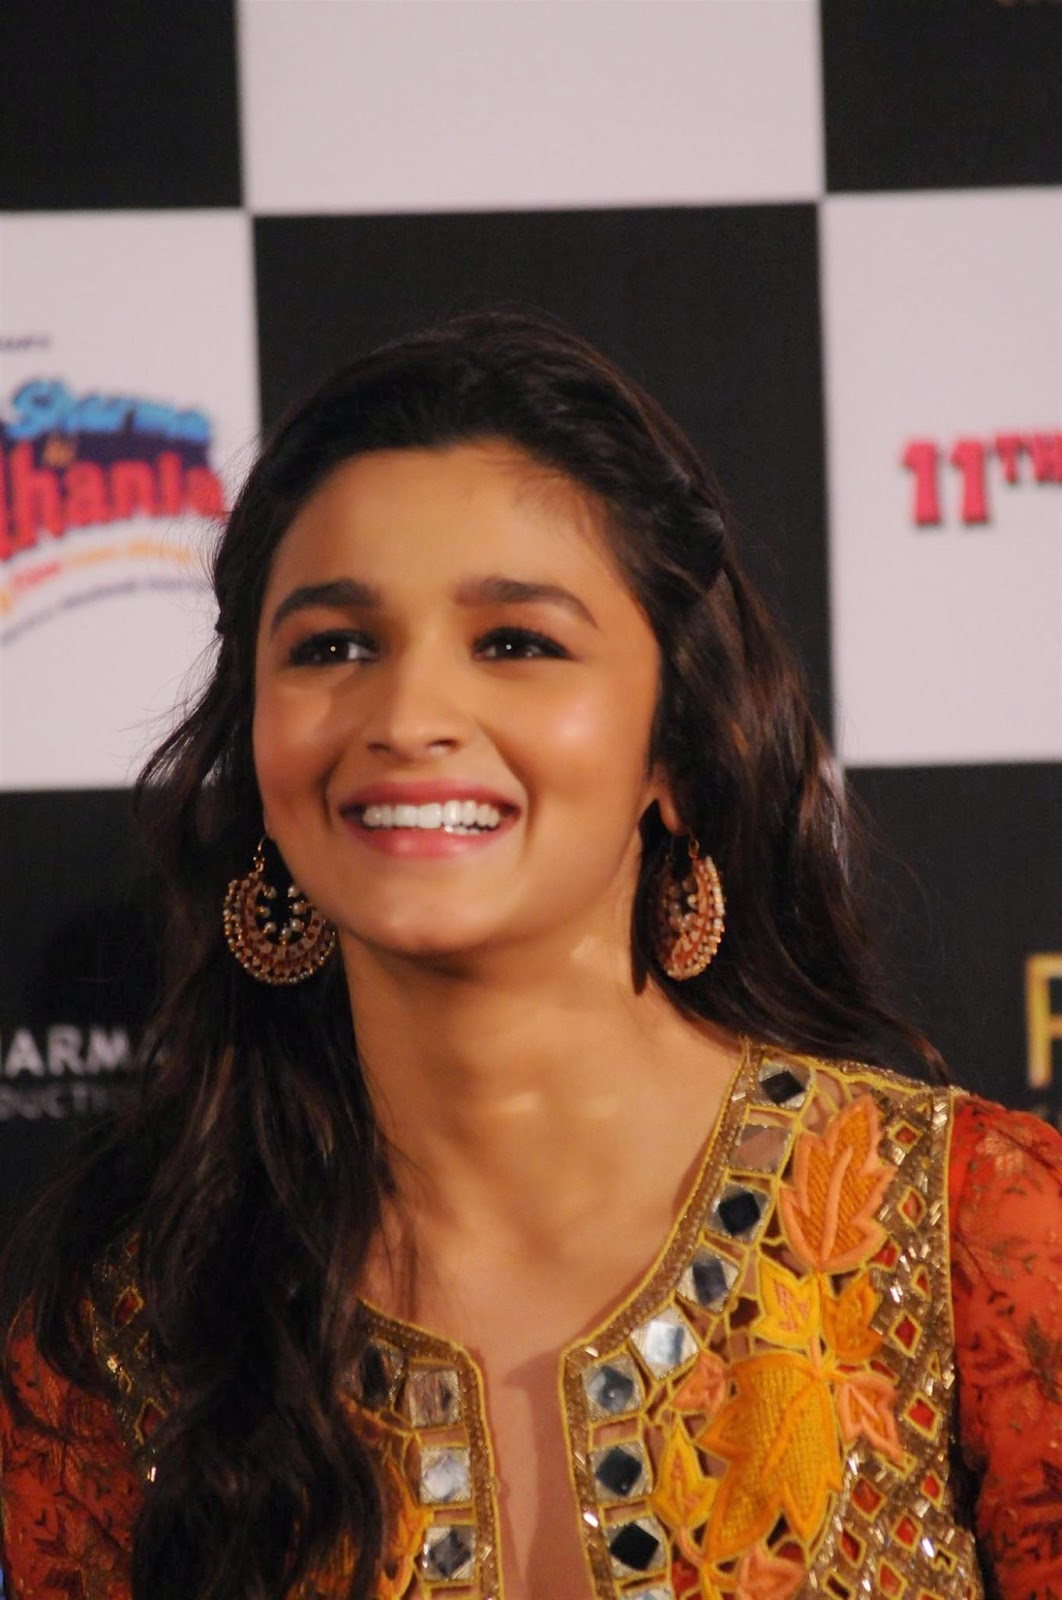 High Quality Bollywood Celebrity Pictures Alia Bhatt -6907